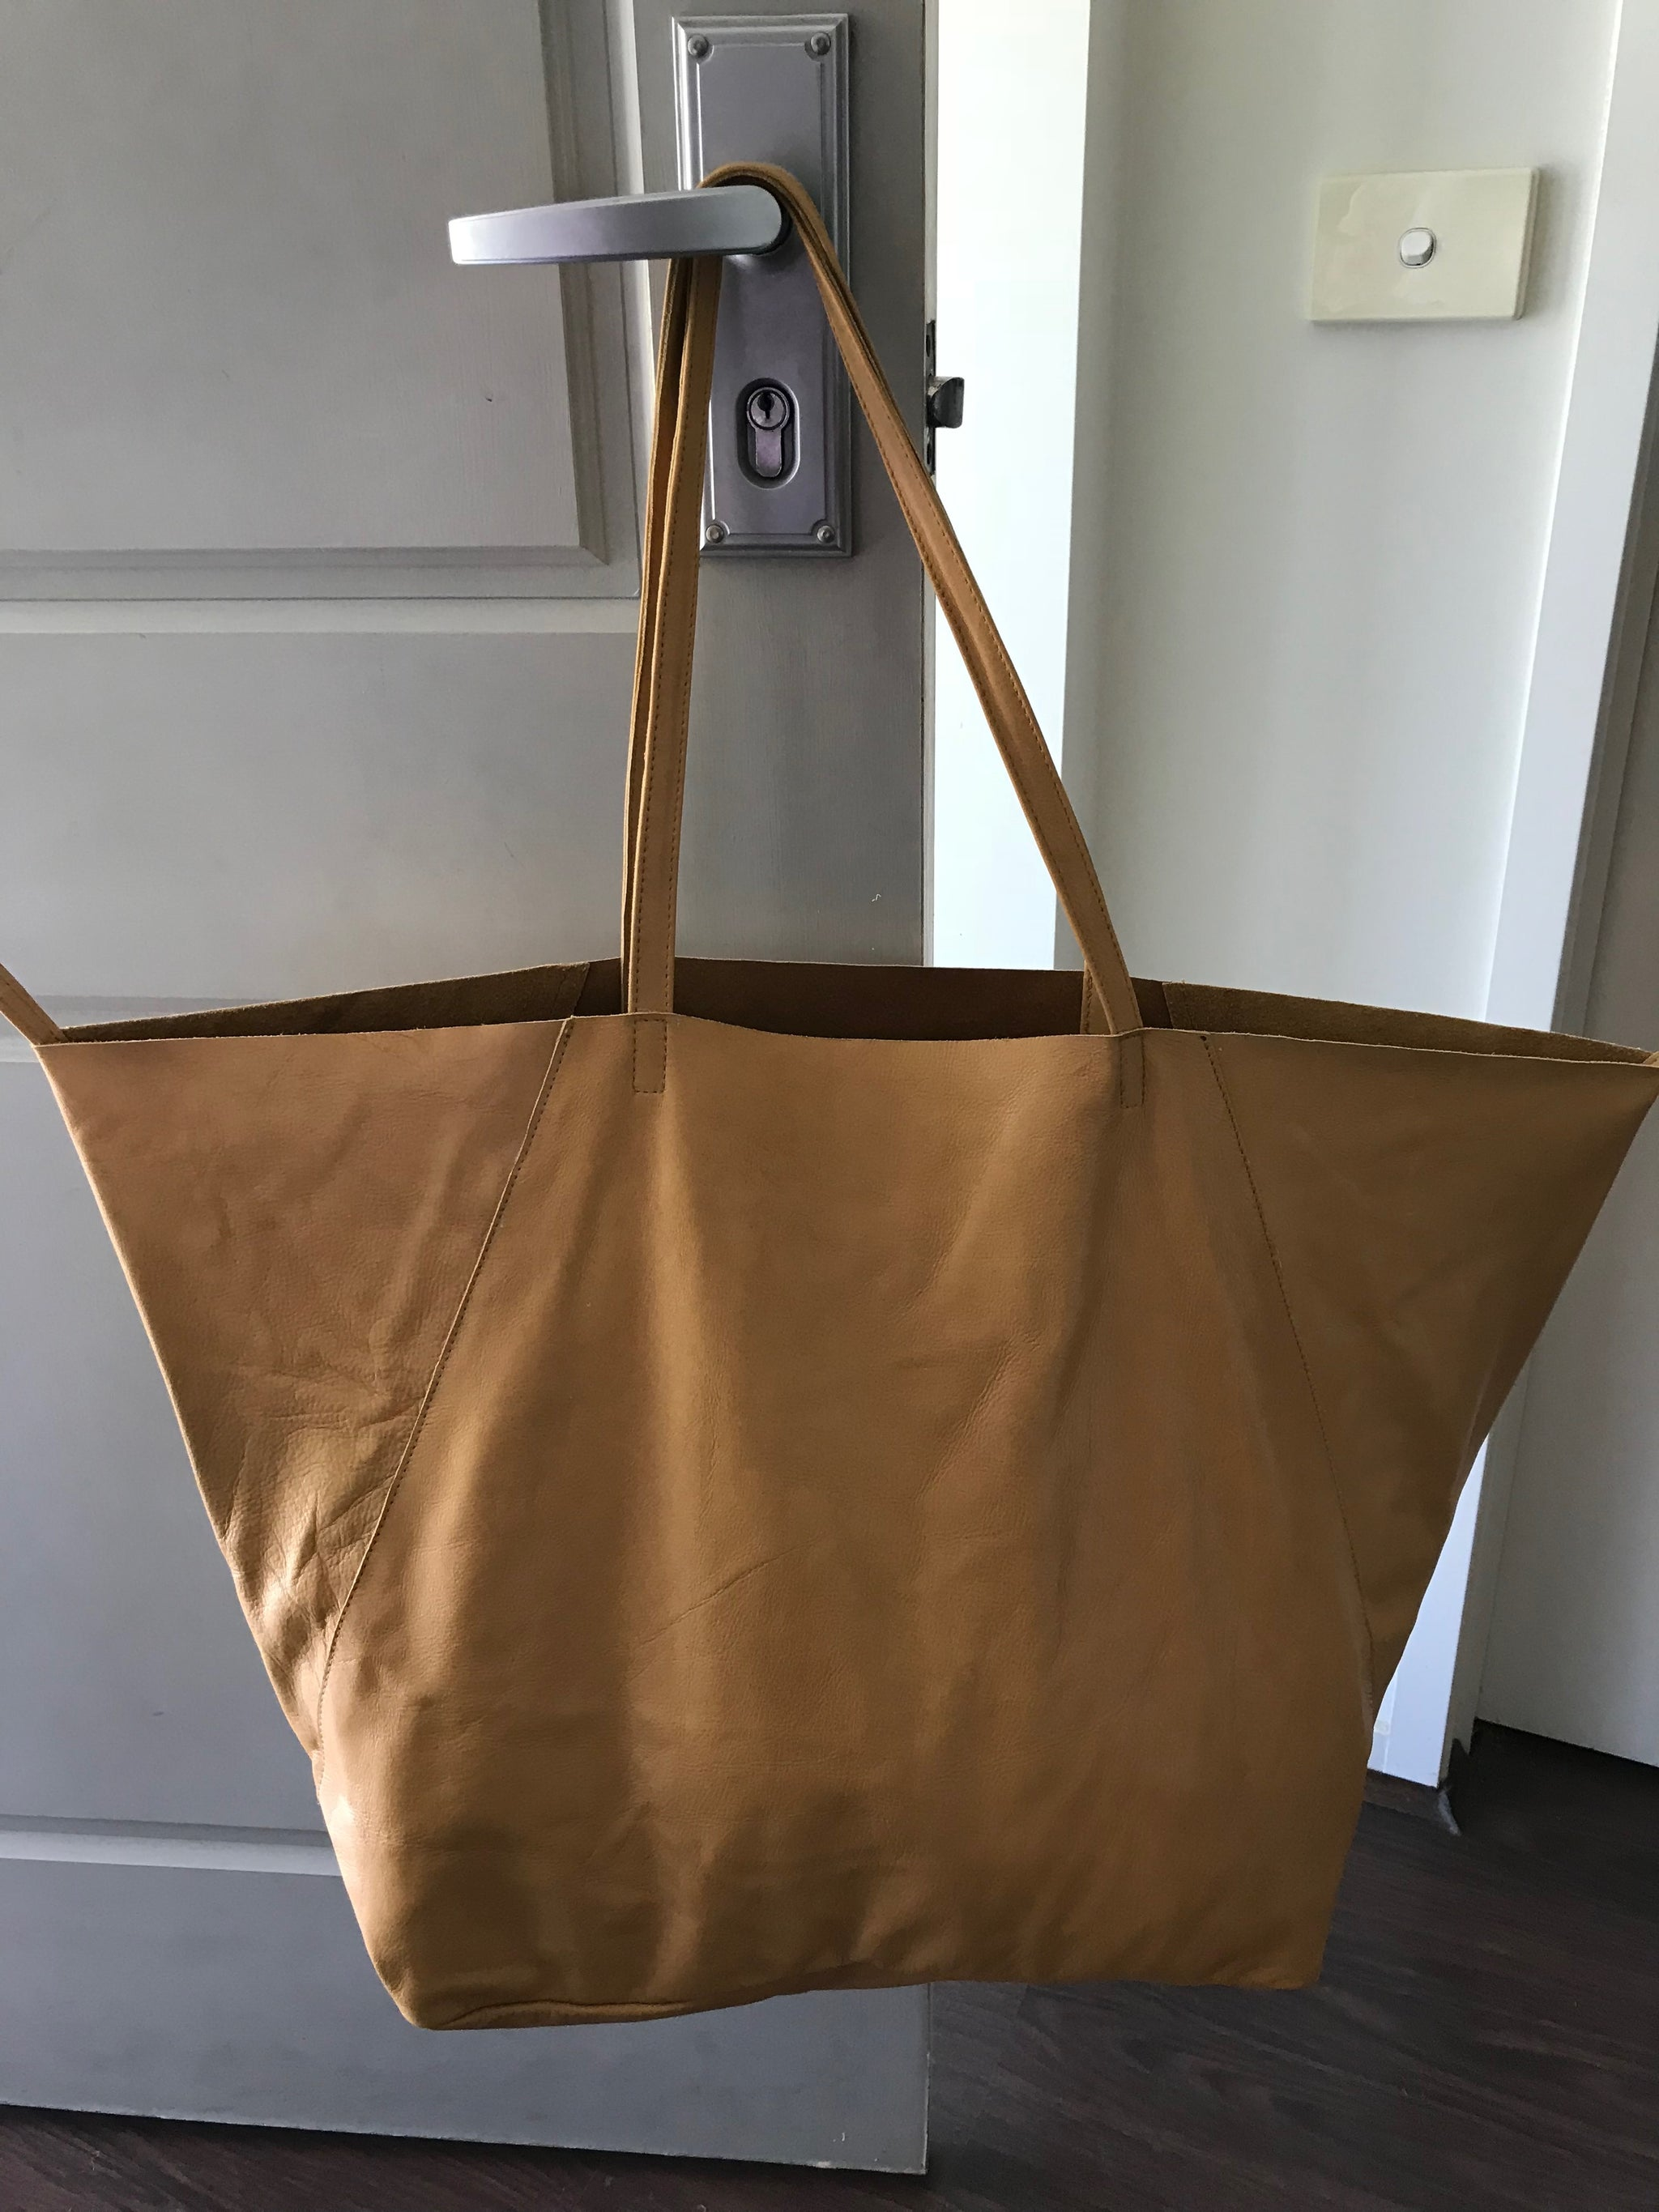 The Tie Up Tote - New design